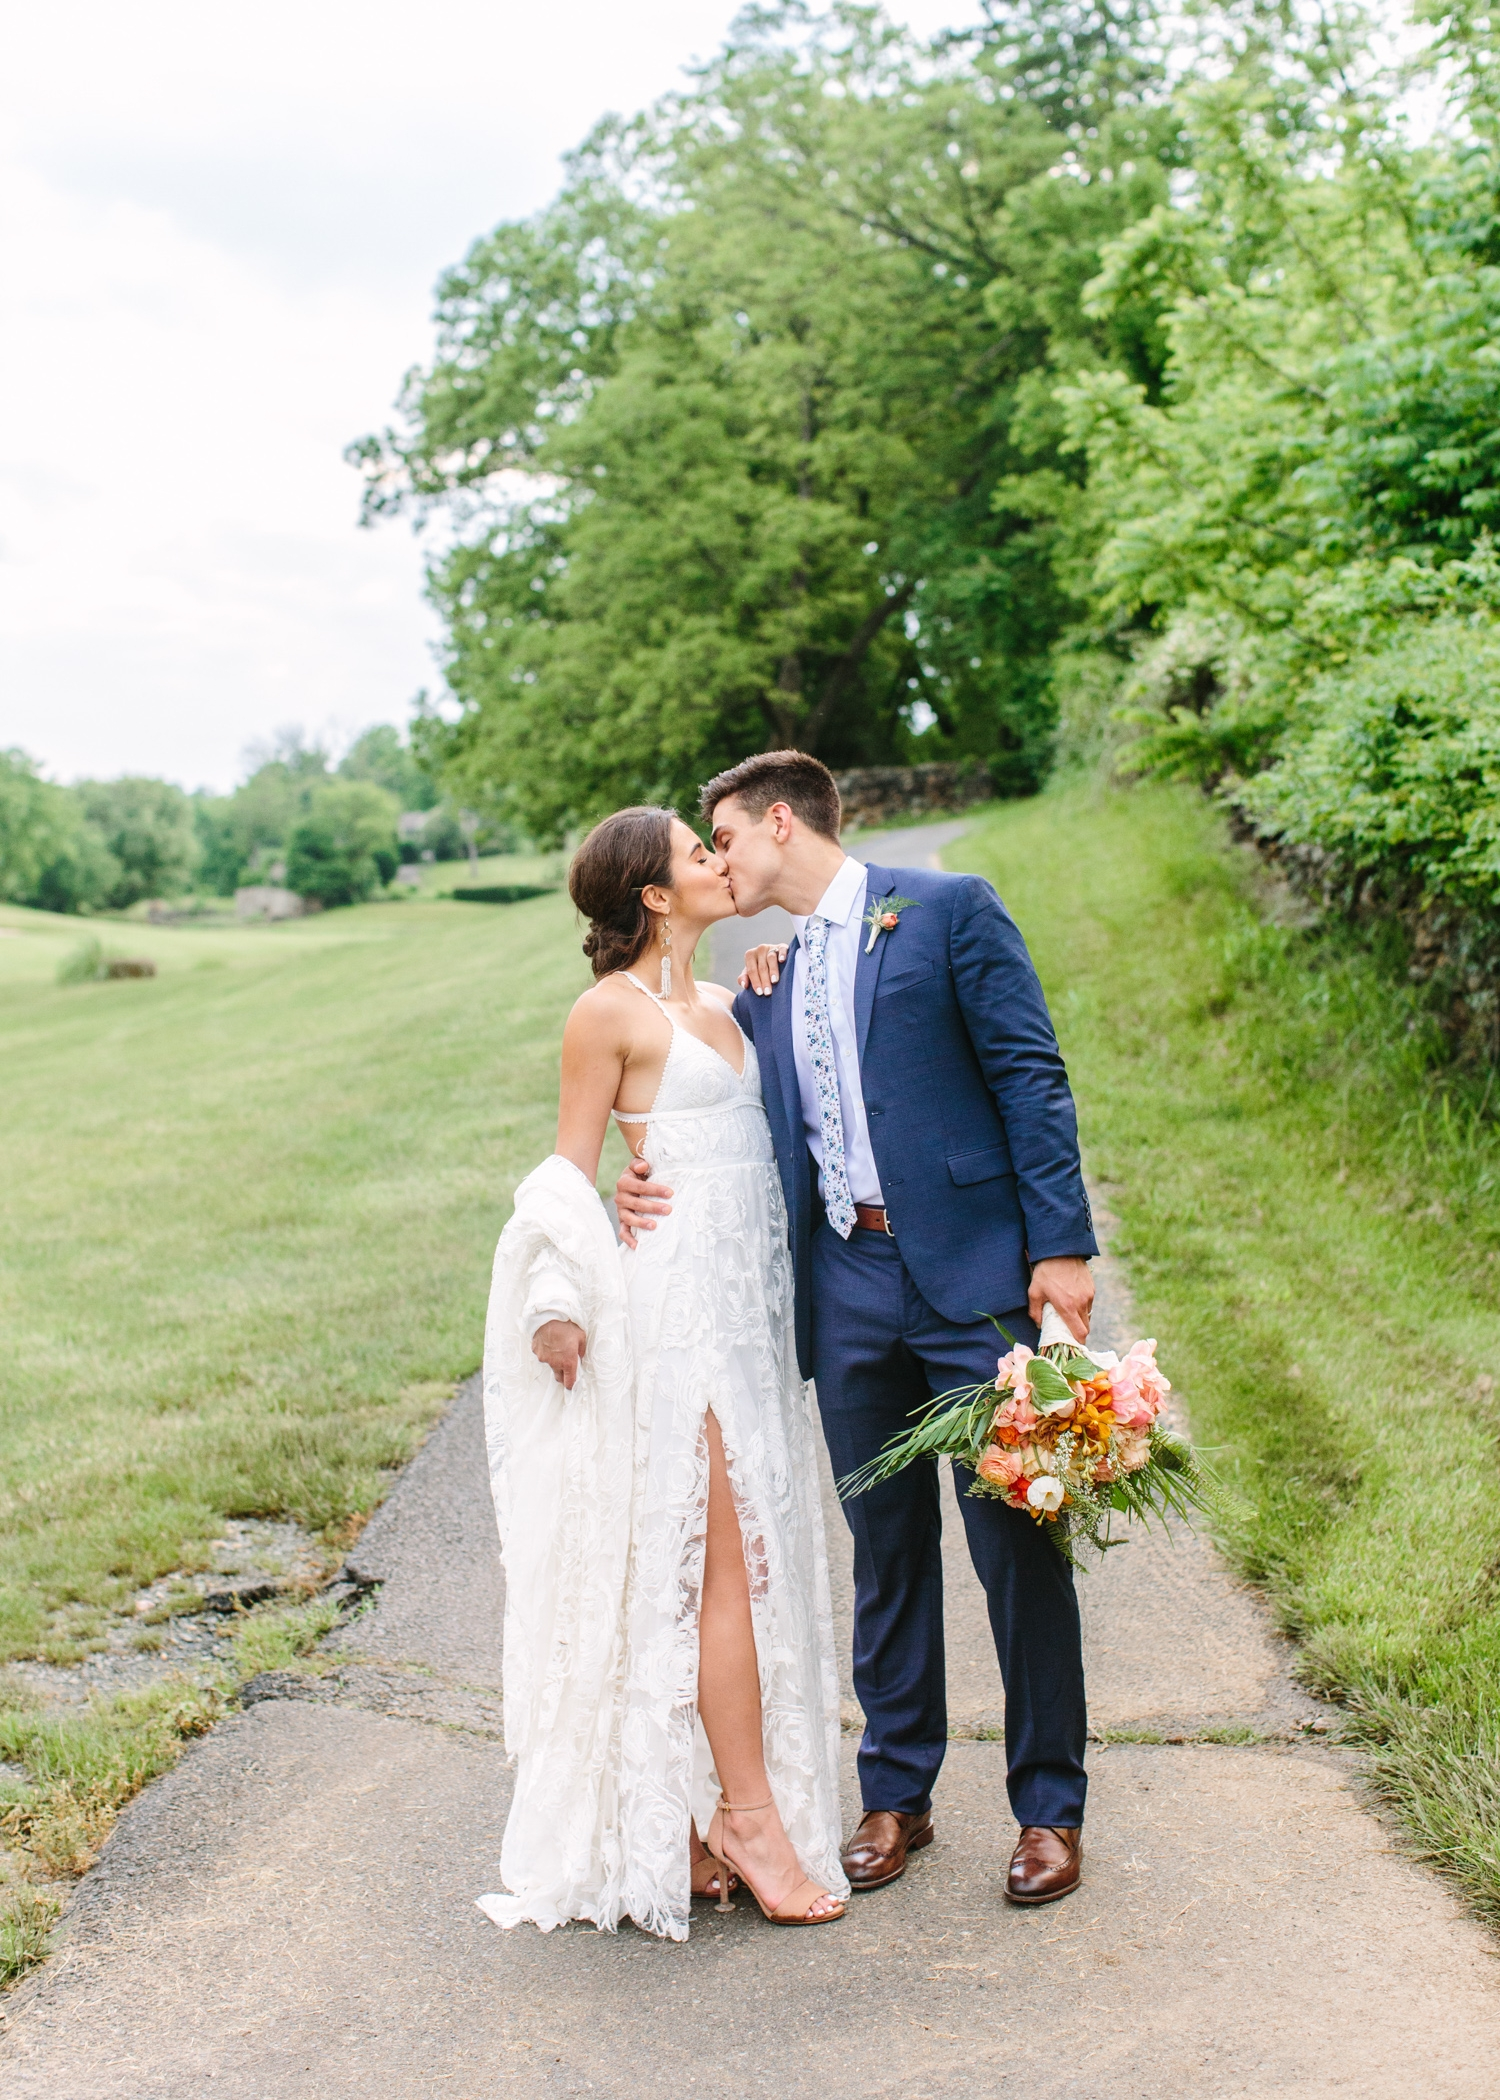 Deacon & Dakota - Modern Bohemian Wedding